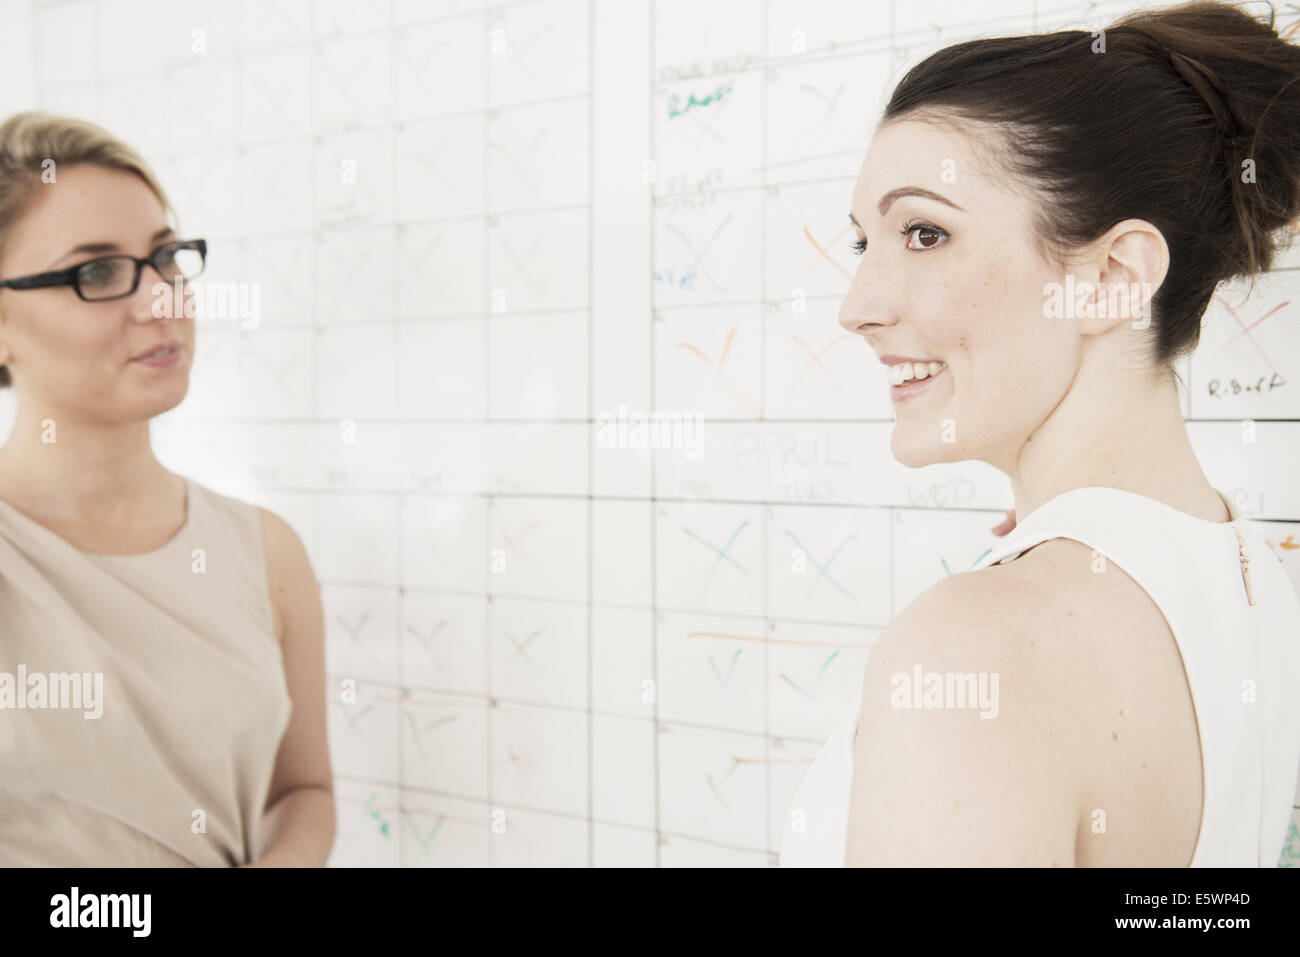 Two young businesswomen planning in office - Stock Image